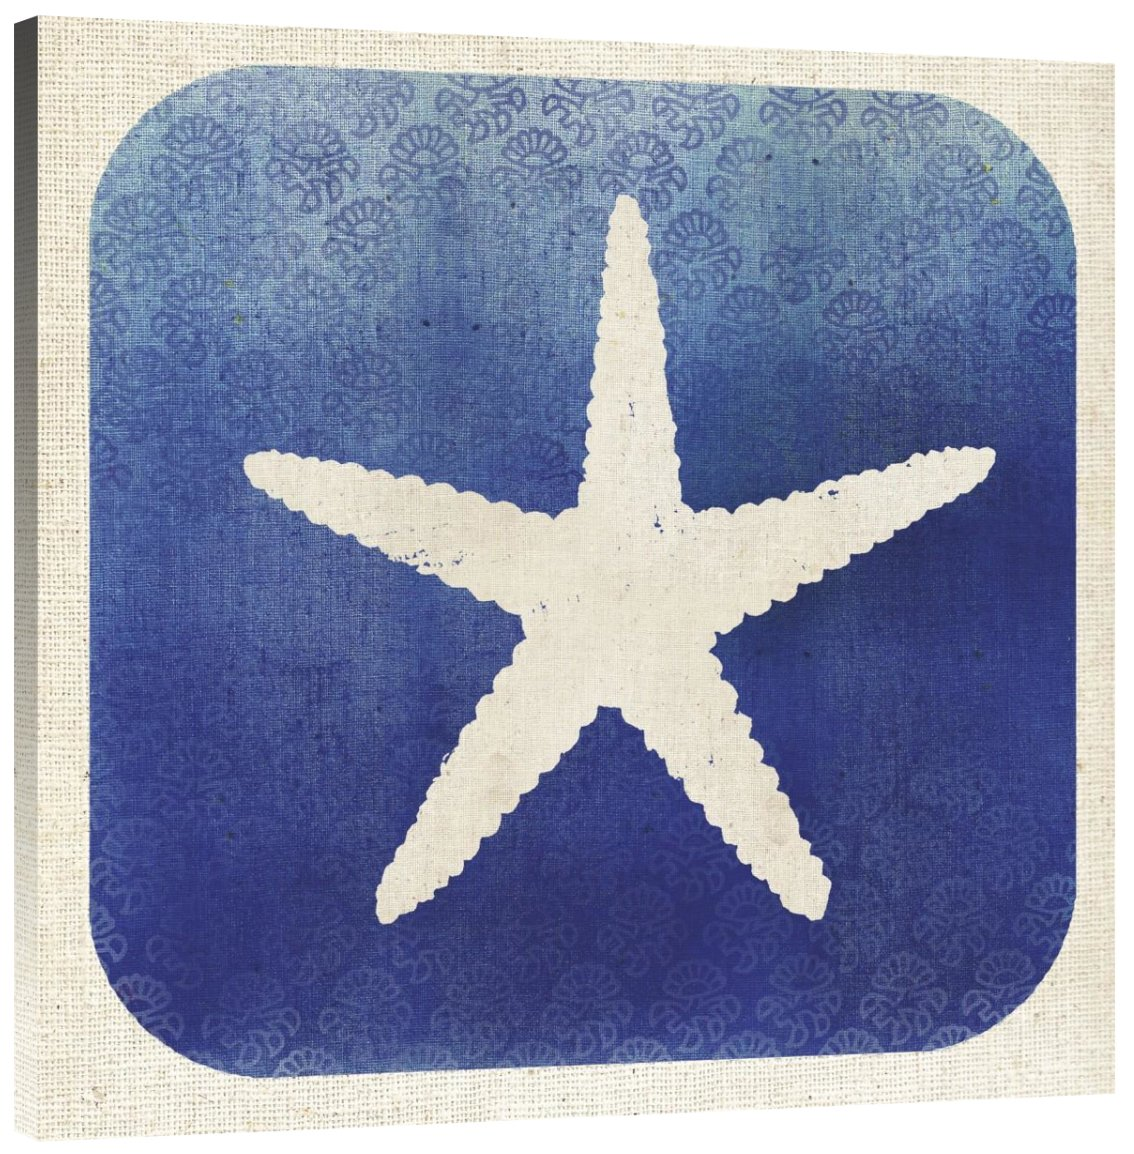 Global Gallery Studio Mousseau Watermark Starfish Giclee Stretched Canvas Artwork 30 x 30